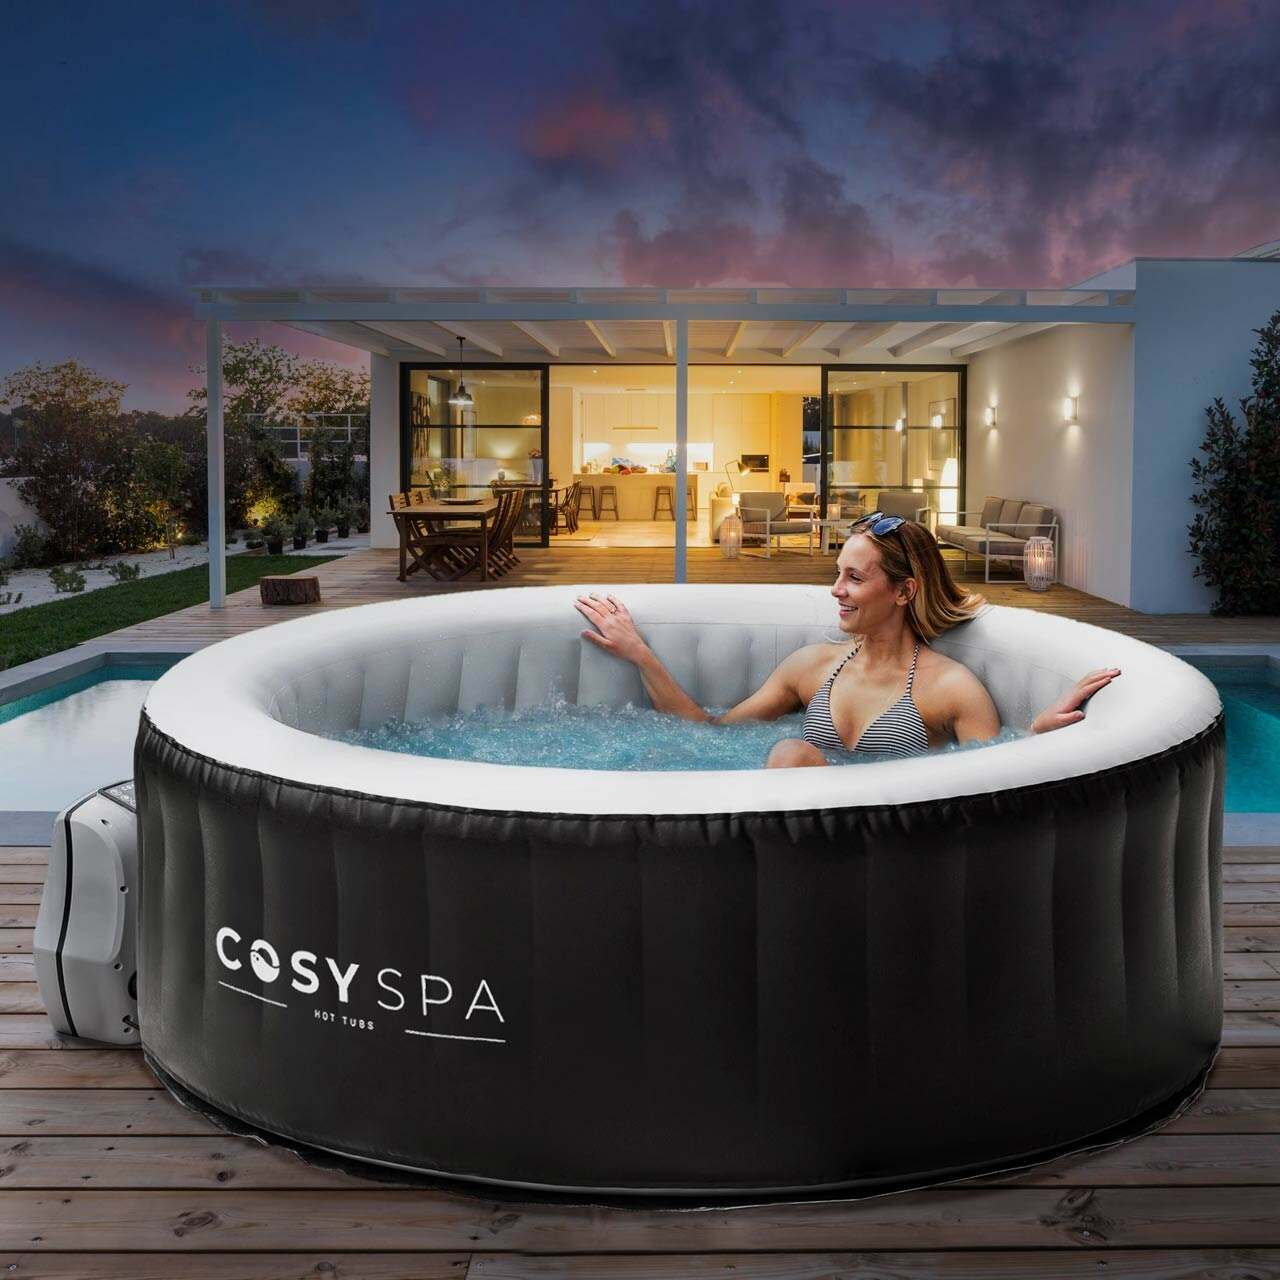 CosySpa Inflatable Hot Tubs [New Upgraded 2021 Model]